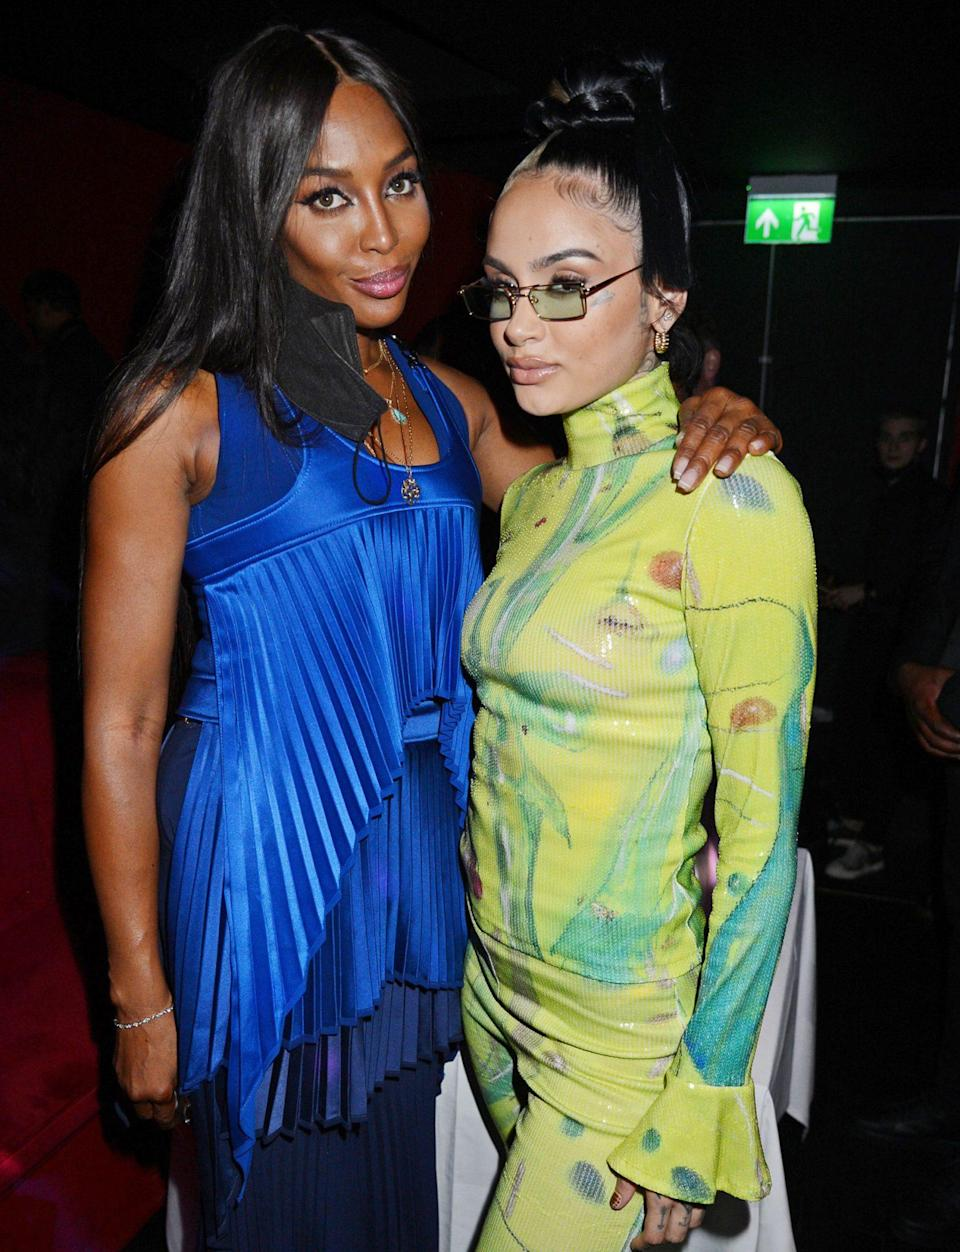 <p>Naomi Campbell and Kehlani get together on Sept. 16 at the London Fashion Week opening night party at The Windmill. </p>